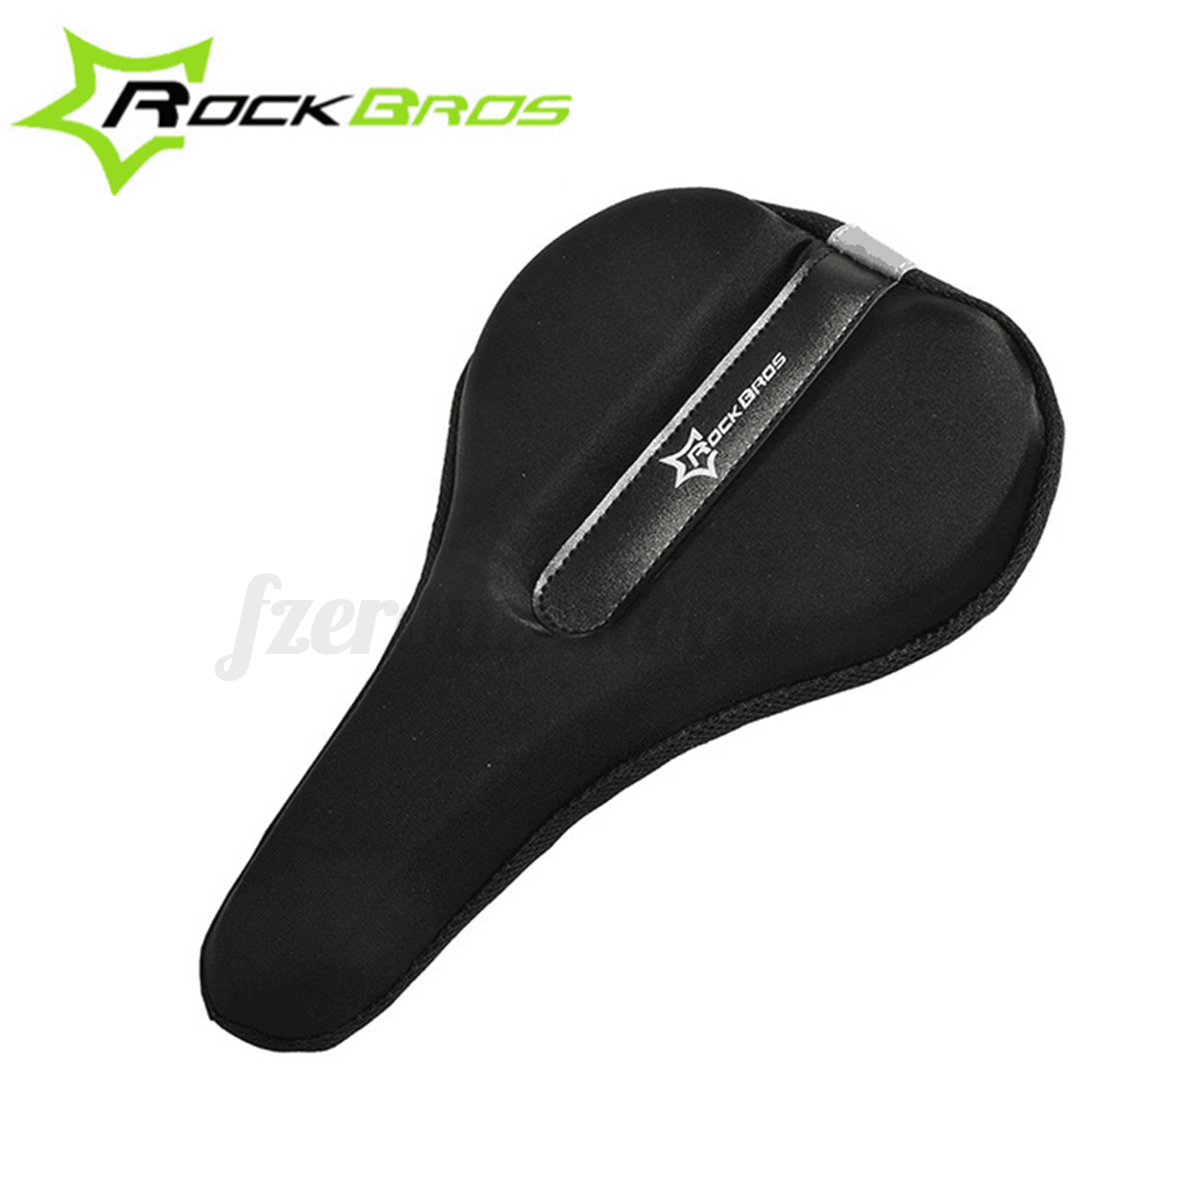 RockBros-Cycling-Bicycle-Bike-Sponge-Pad-Seat-Saddle-Cover-Soft-Cushion-Comfort